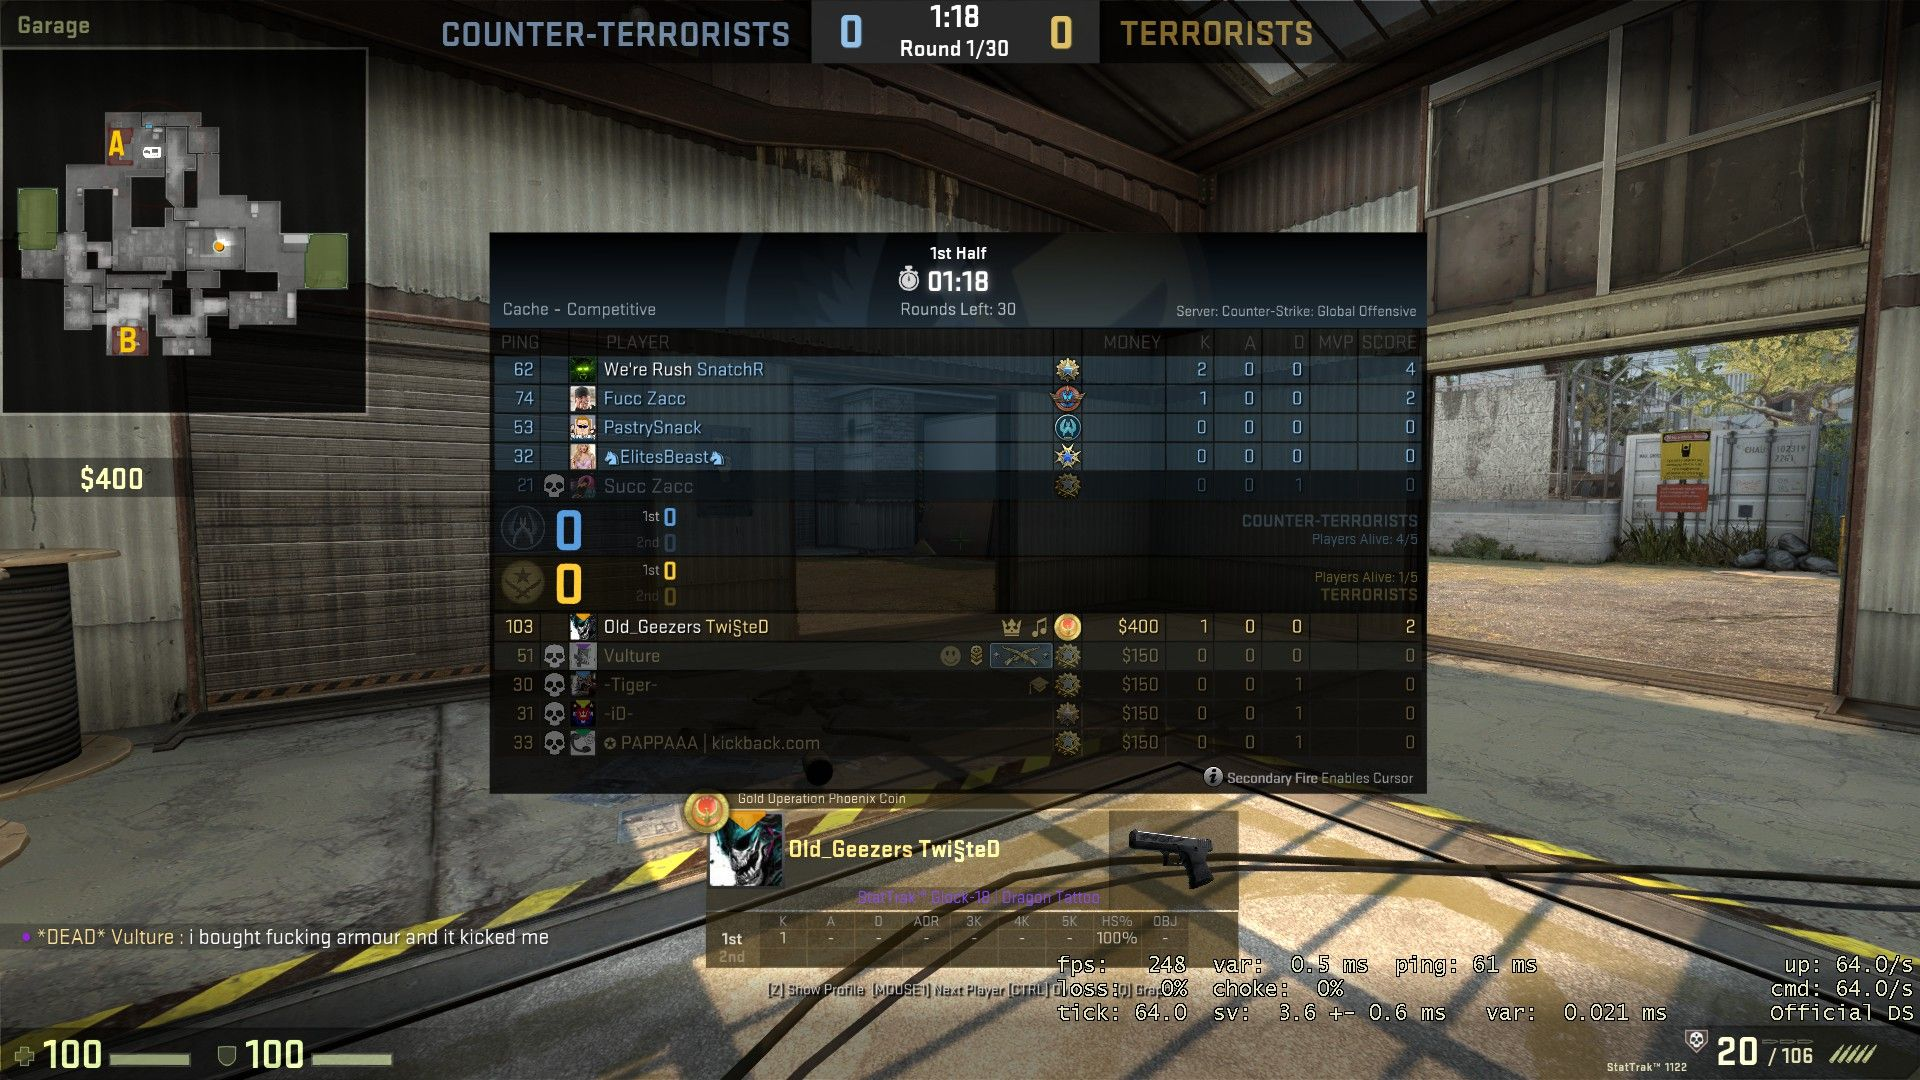 I got AFK kicked first round after warmup AFTER buying